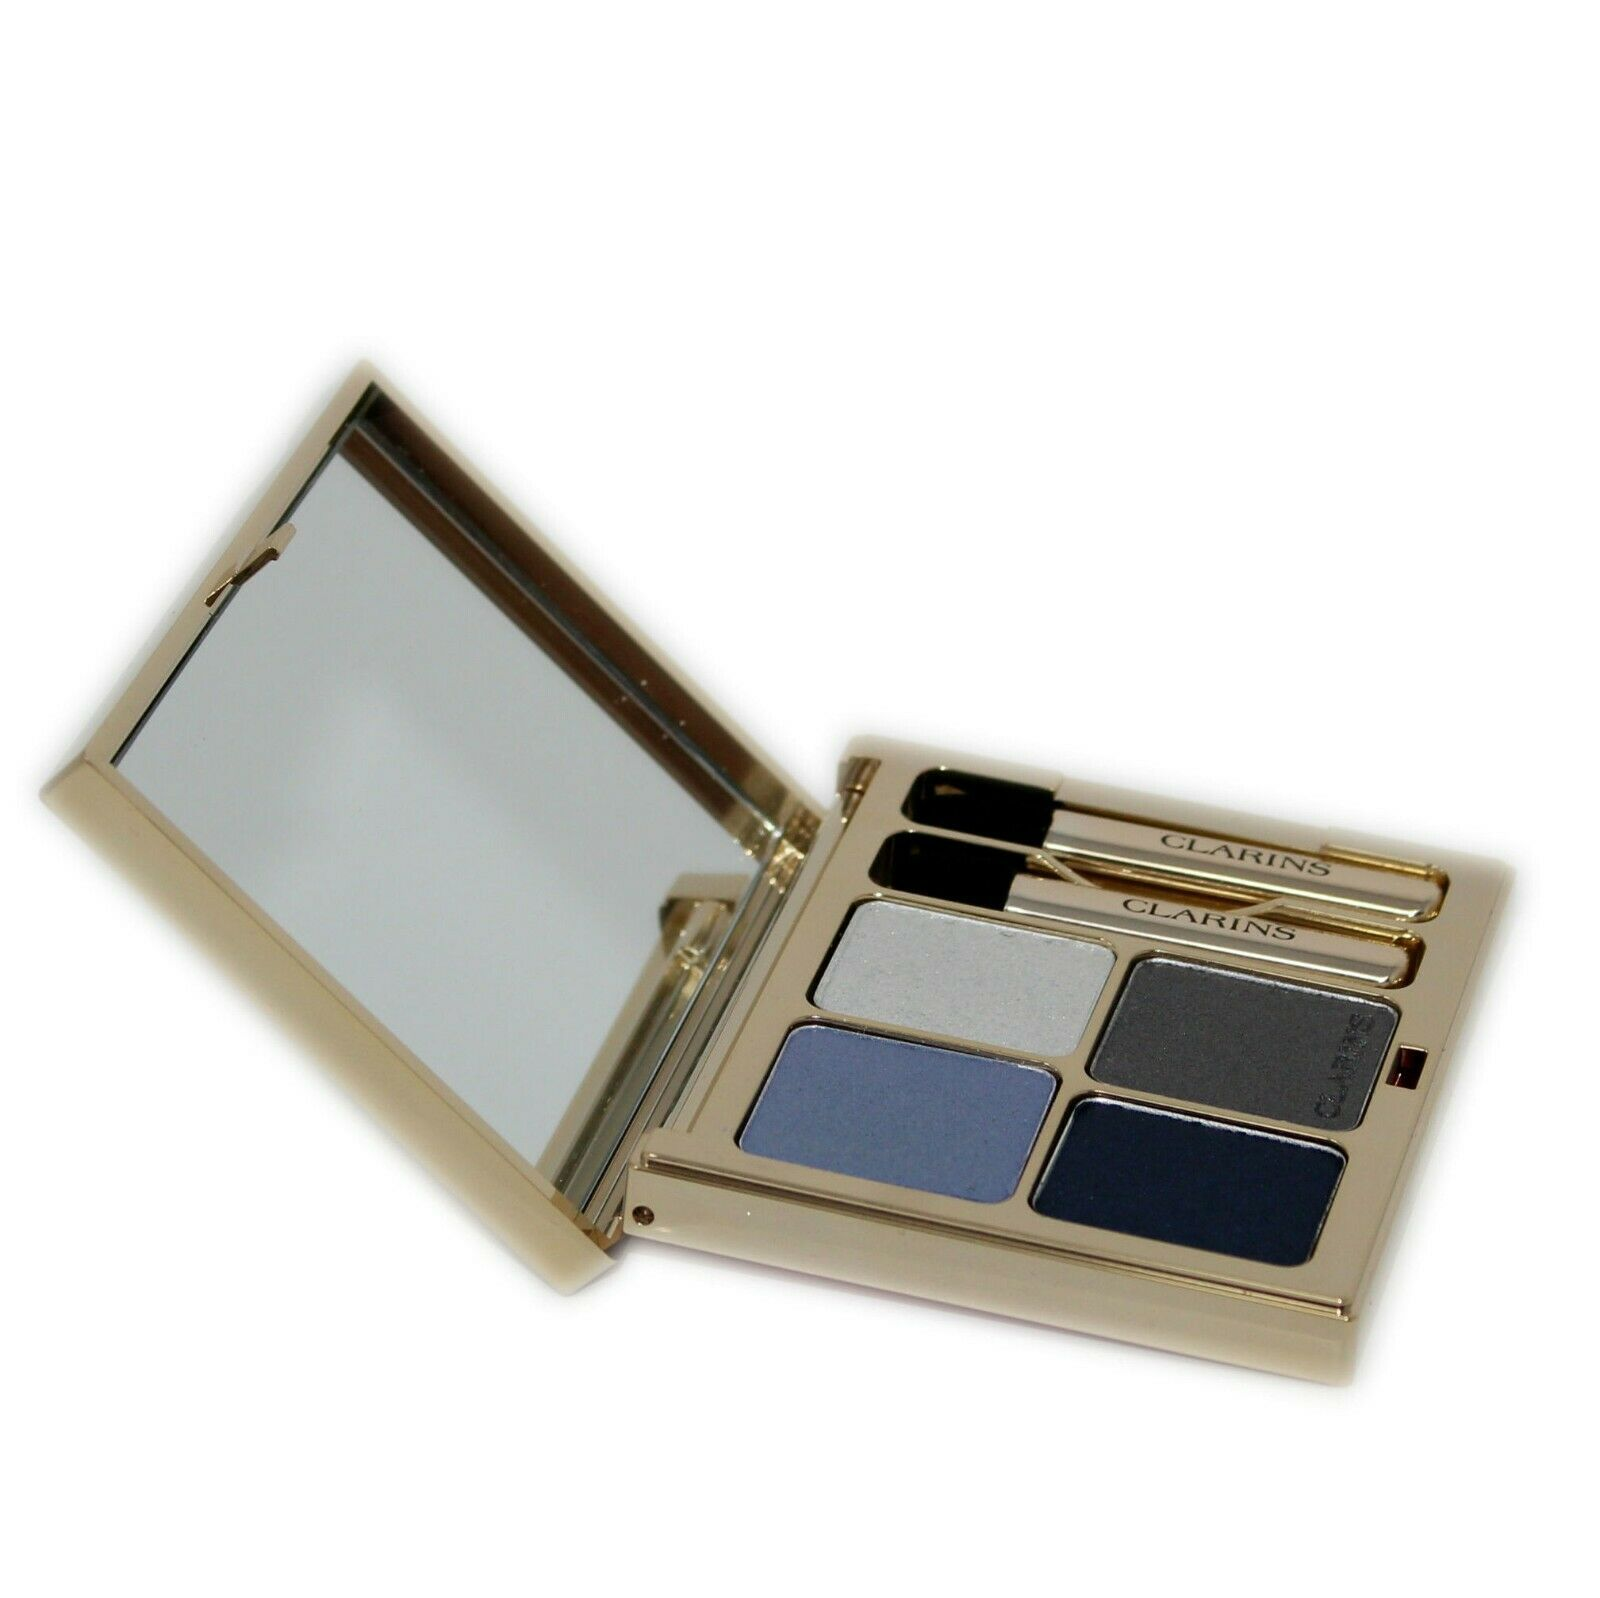 Primary image for CLARINS OMBRE MINERALE 4 COULEURS EYE QUARTET MINERAL PALETTE 5.8G #04-INDIGO